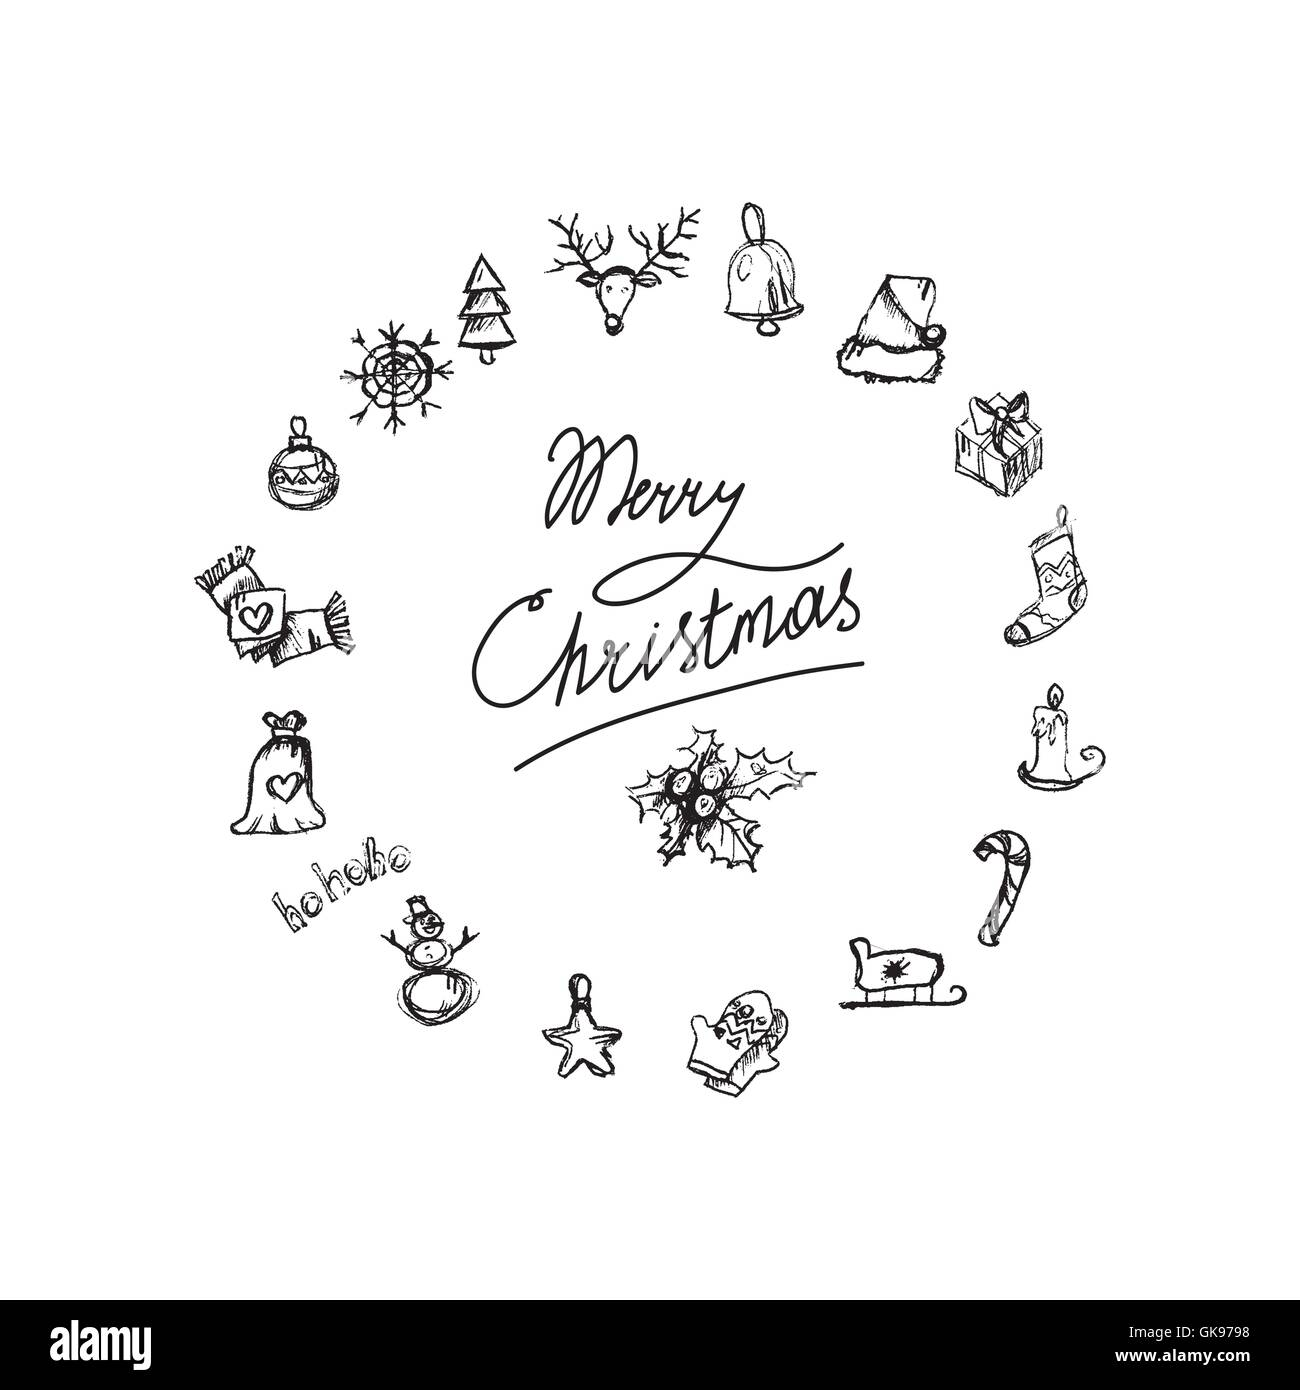 Merry Christmas Icons In View Wreath Happy New Year Symbols Winter